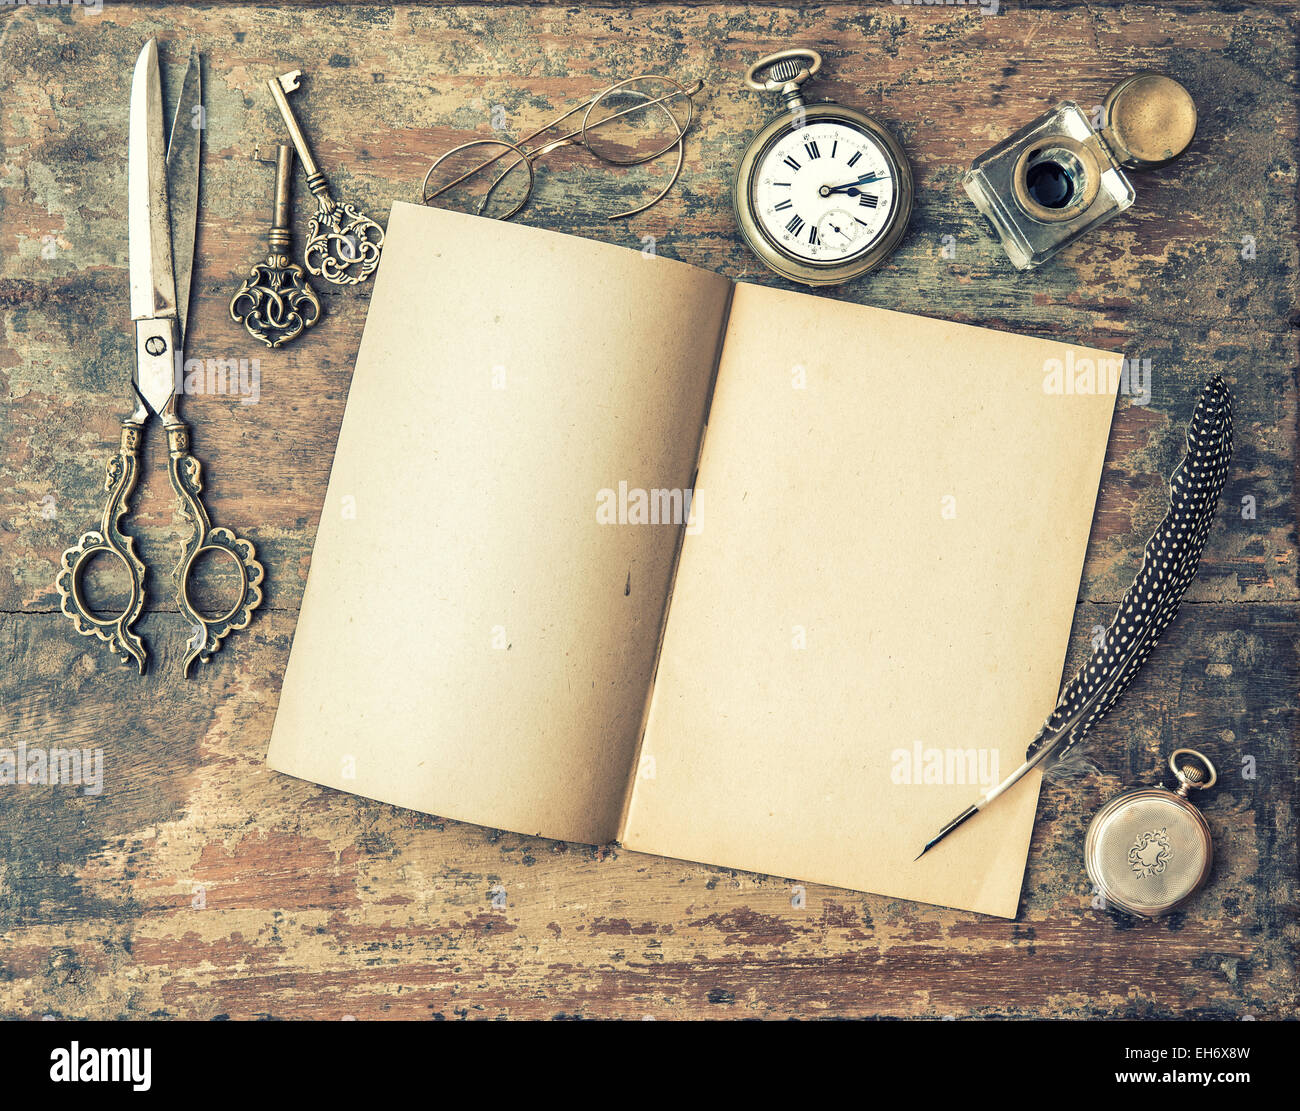 open journal book and vintage writing tools on wooden